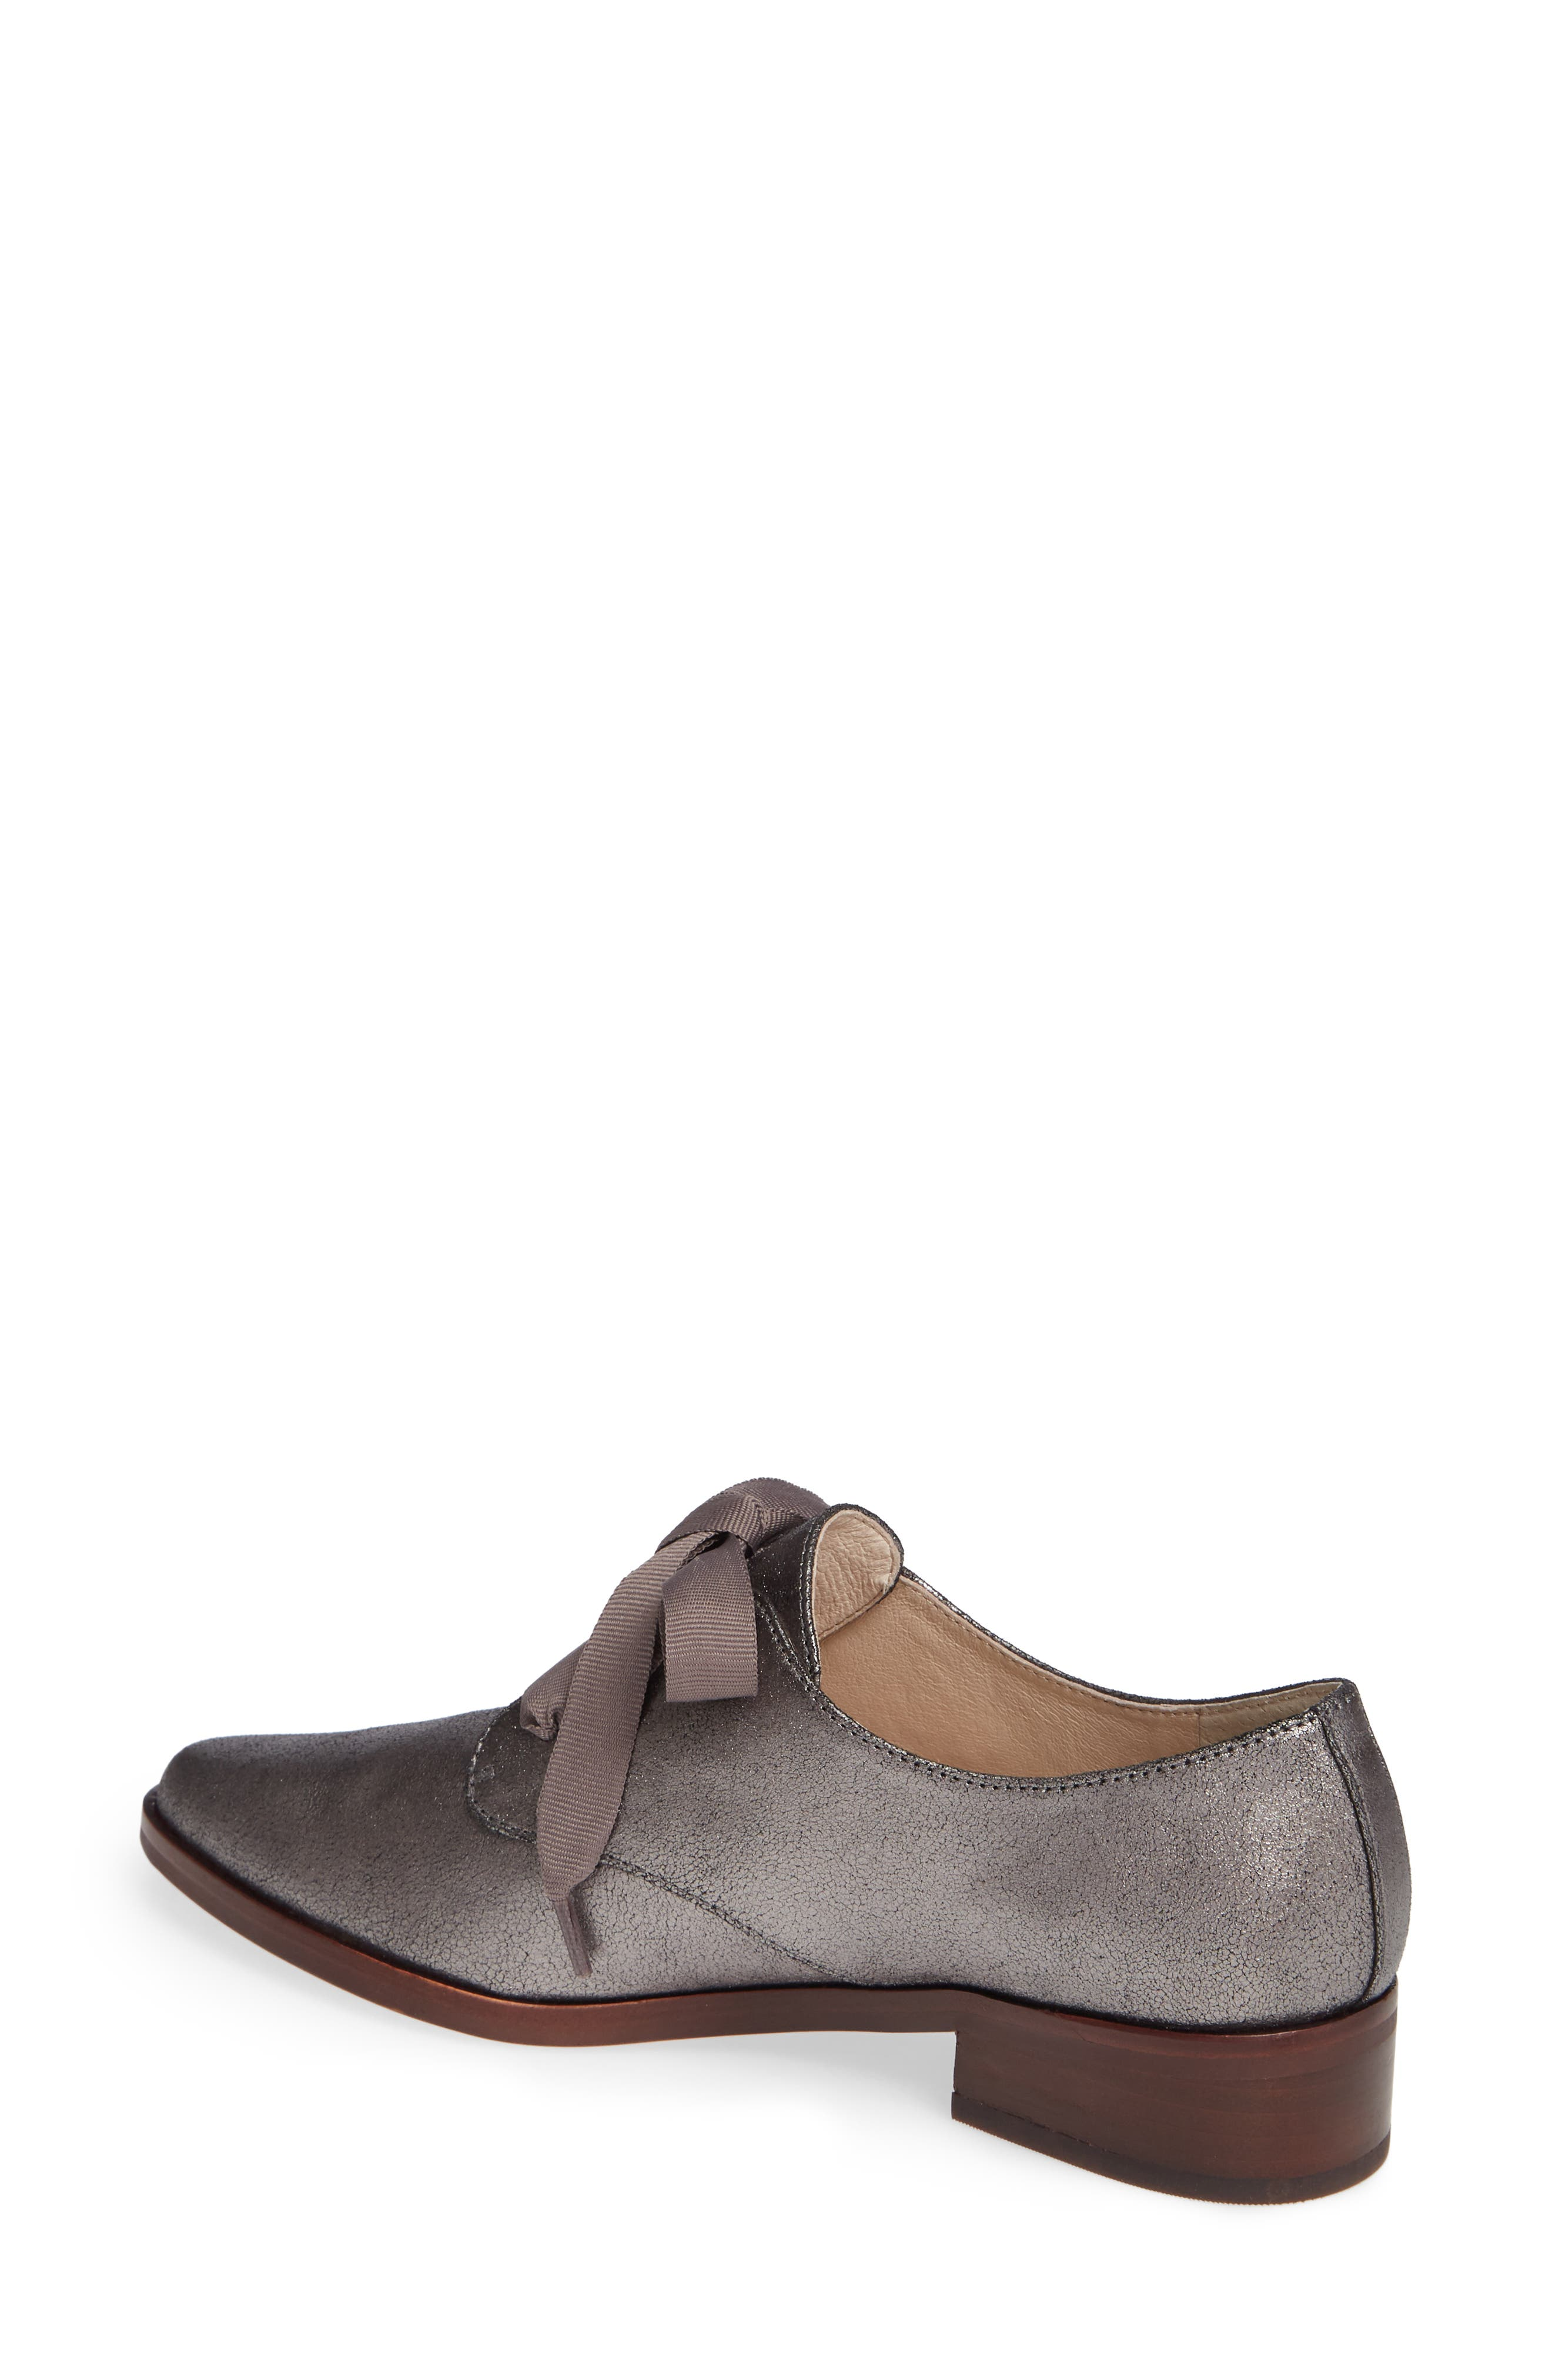 Adwin Almond Toe Oxford,                             Alternate thumbnail 2, color,                             PETROL LEATHER